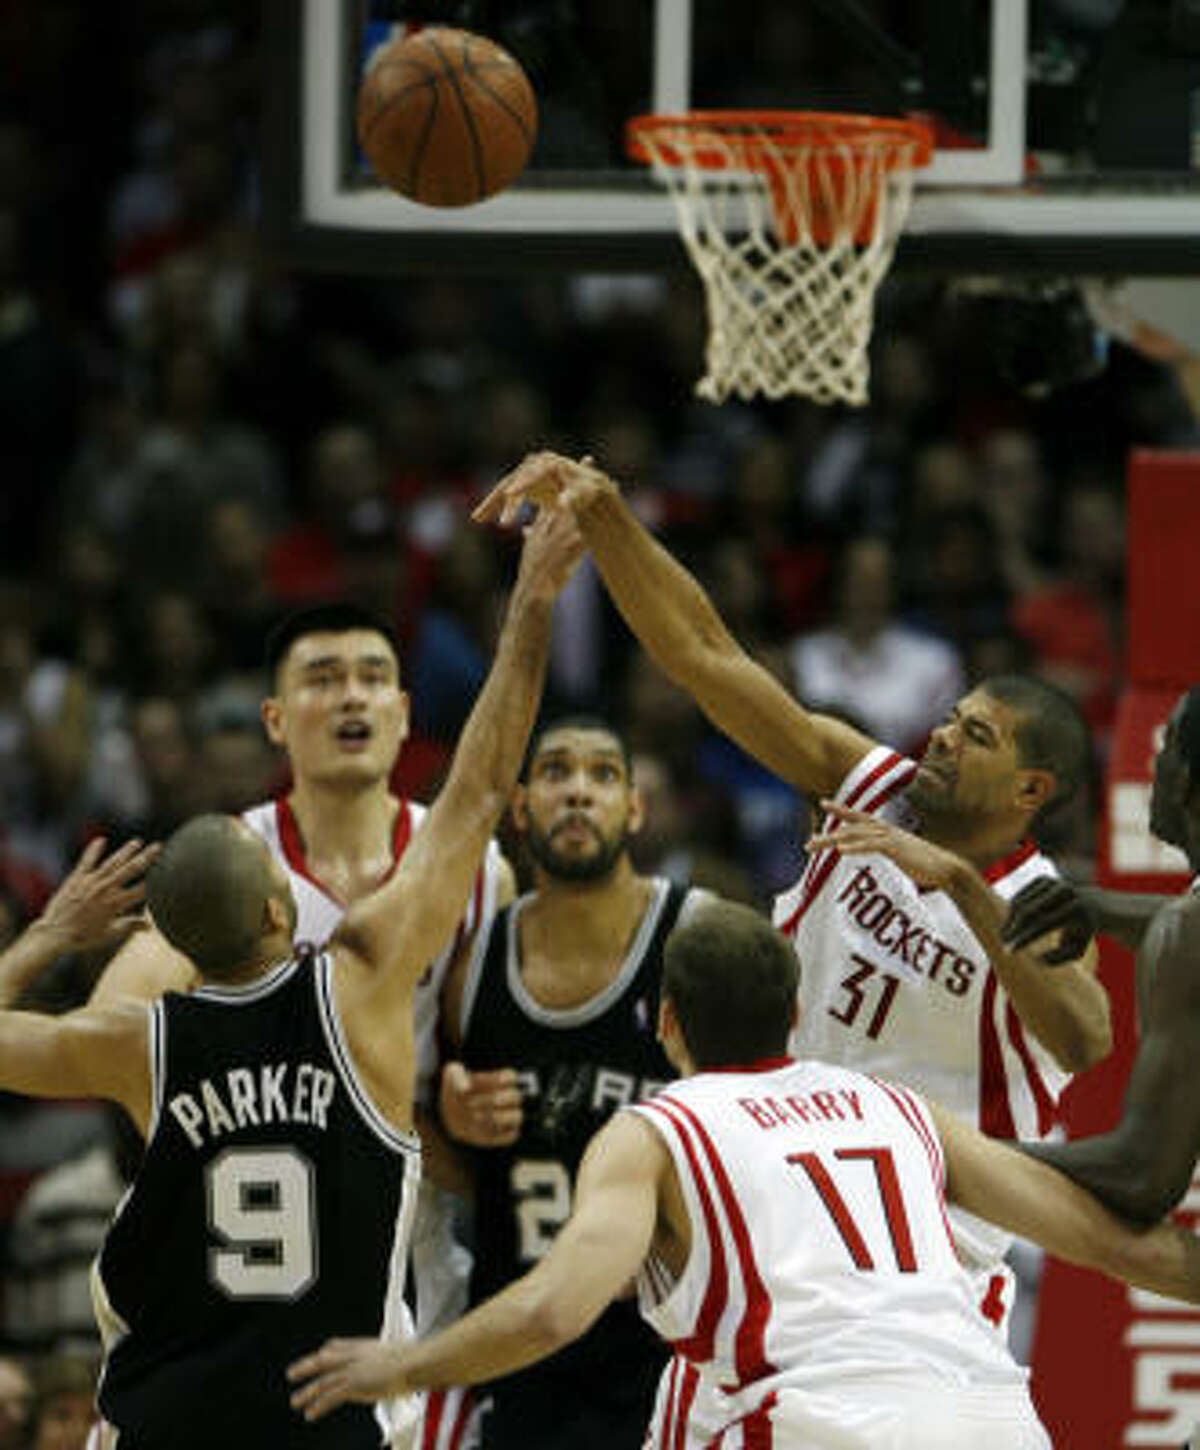 Spurs guard Tony Parker (9) has a jumpball against Shane Battier (31) late in the second half.